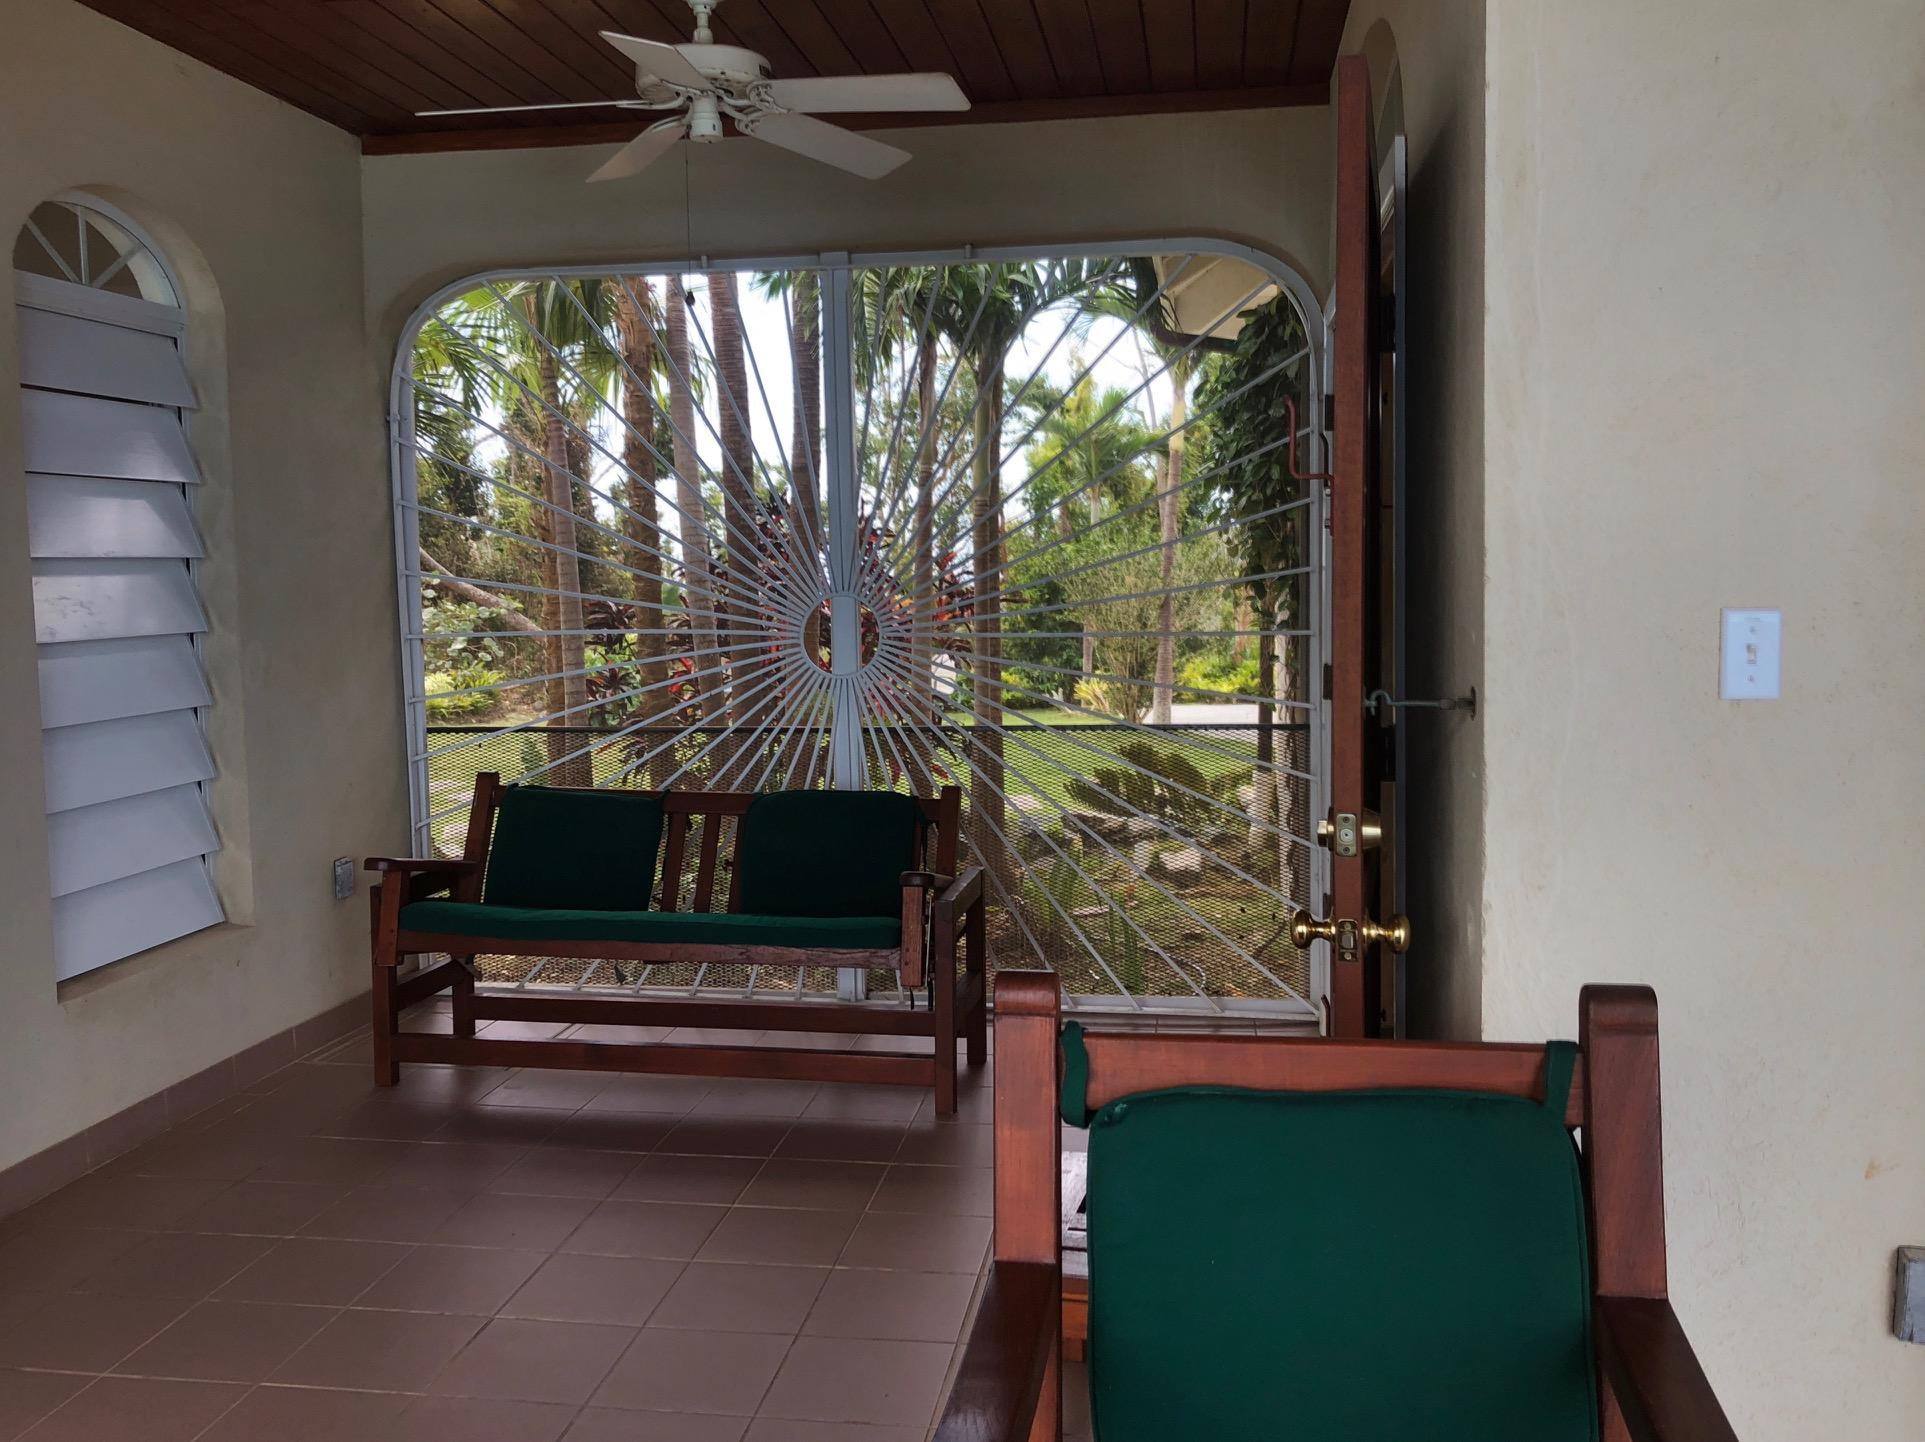 sitting areas at end of each veranda